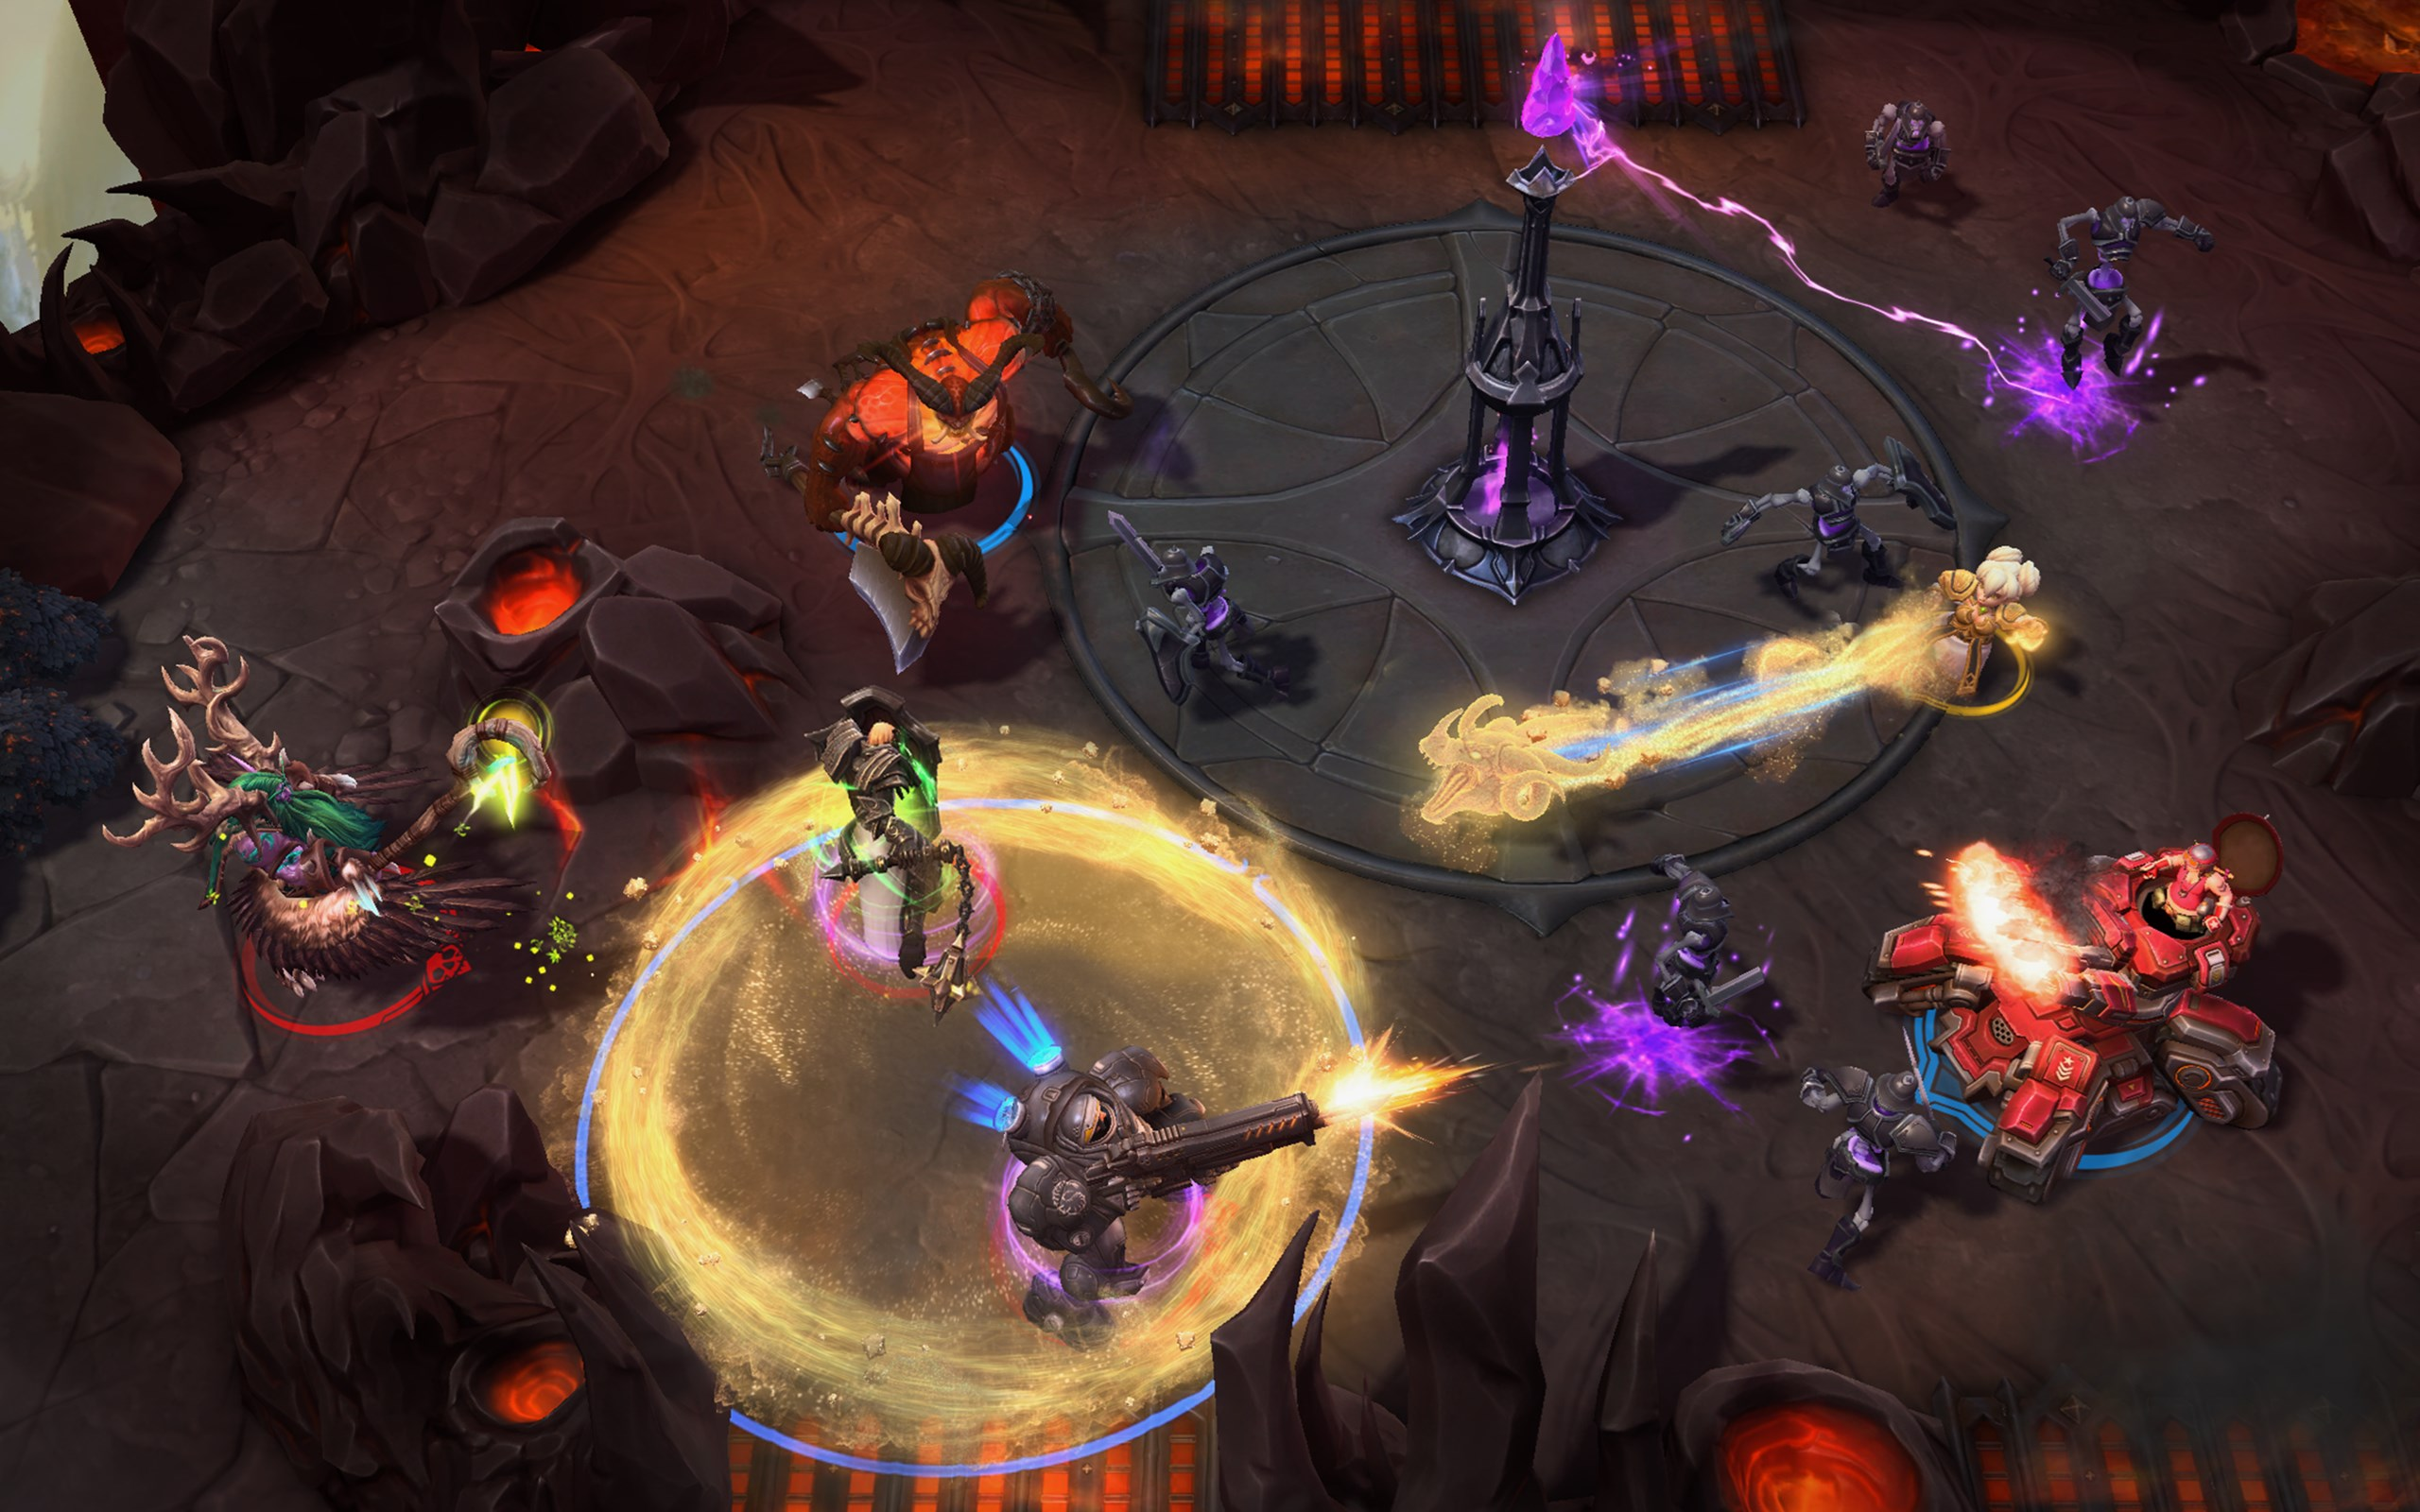 One of HotS's newest characters, Chromie, in action.